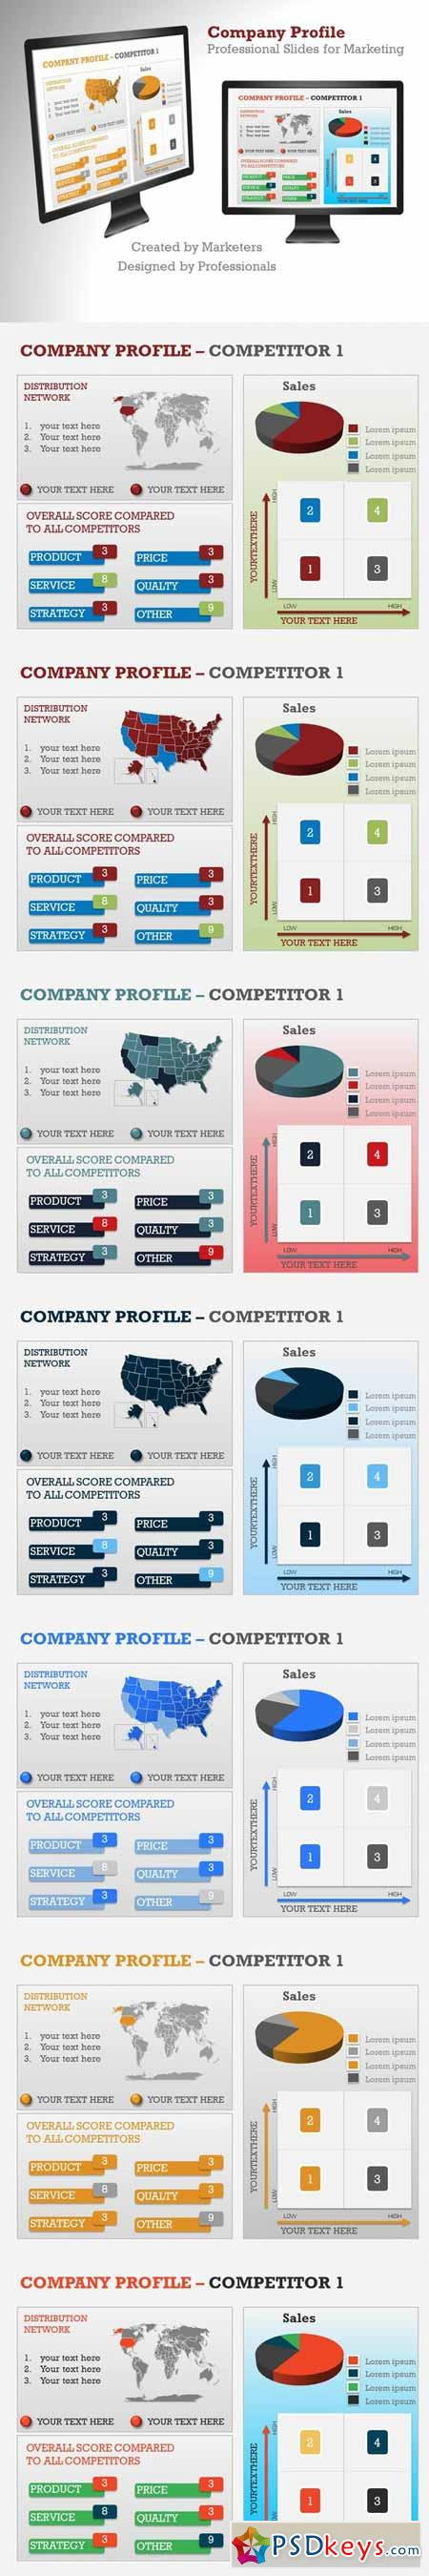 Company Profile PowerPoint Template 372633